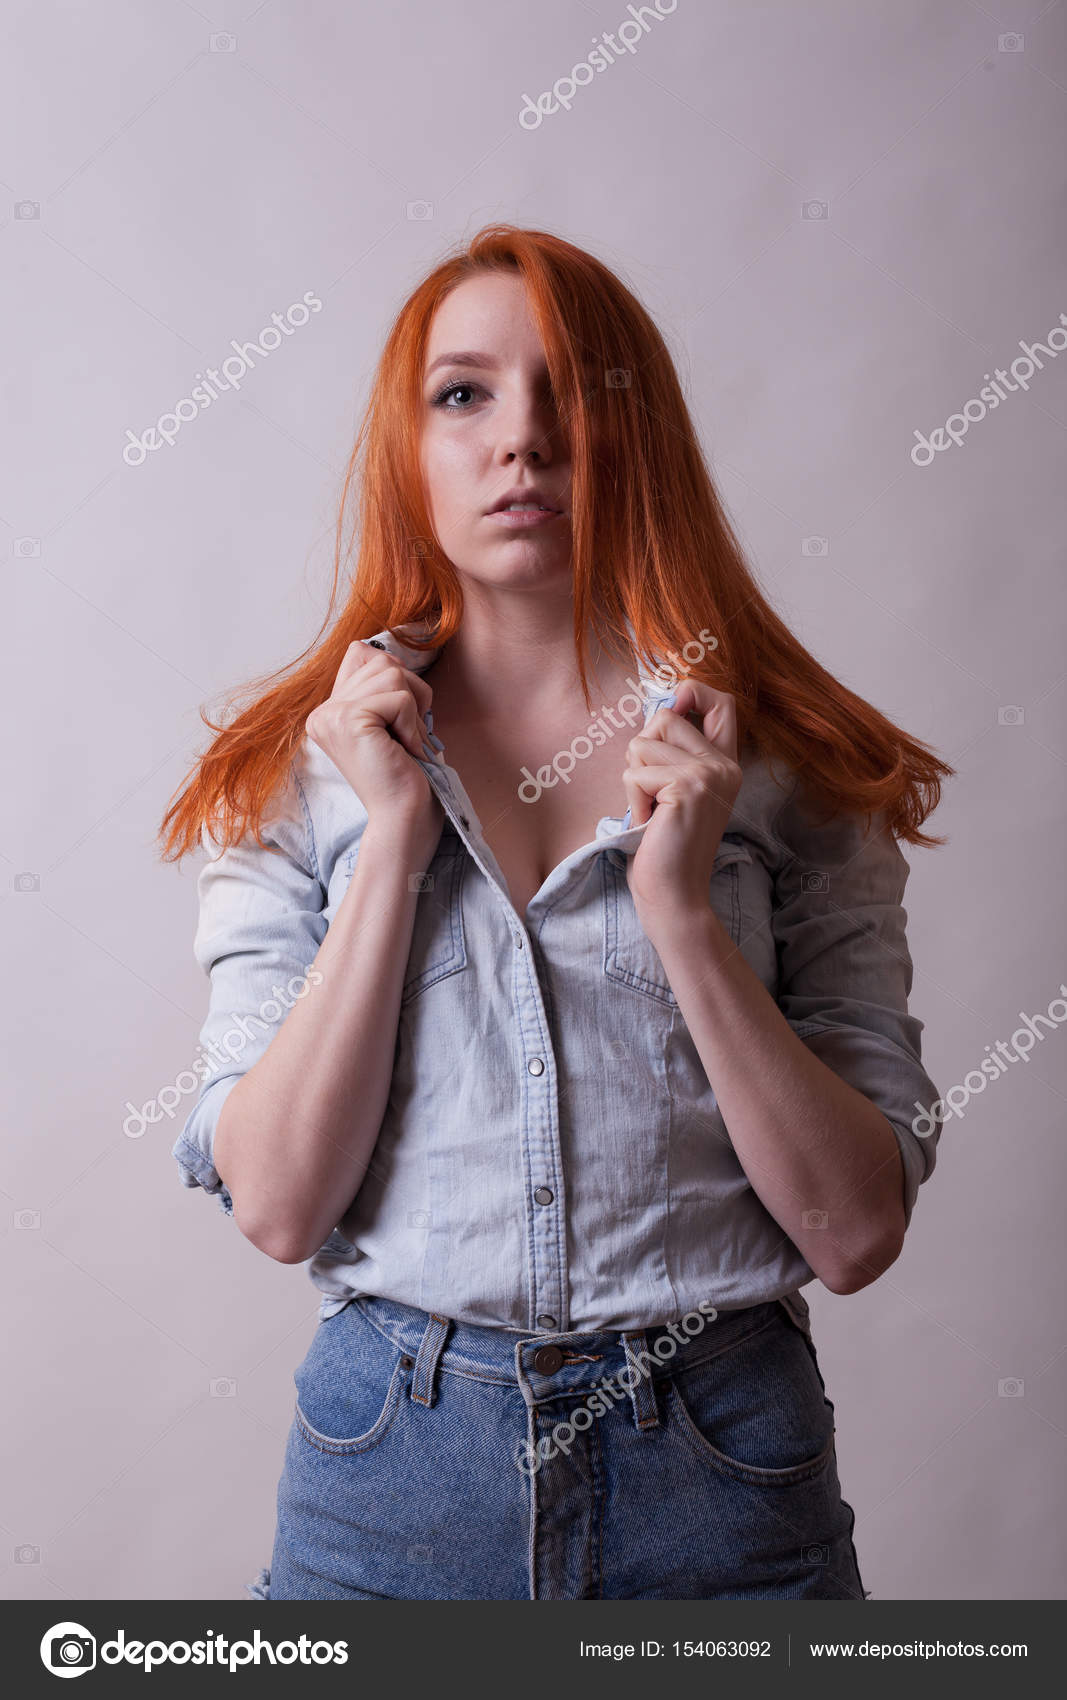 Amazing Busty Redhead Woman In Studio Photo Stock Photo C Dragoscondreaw 154063092